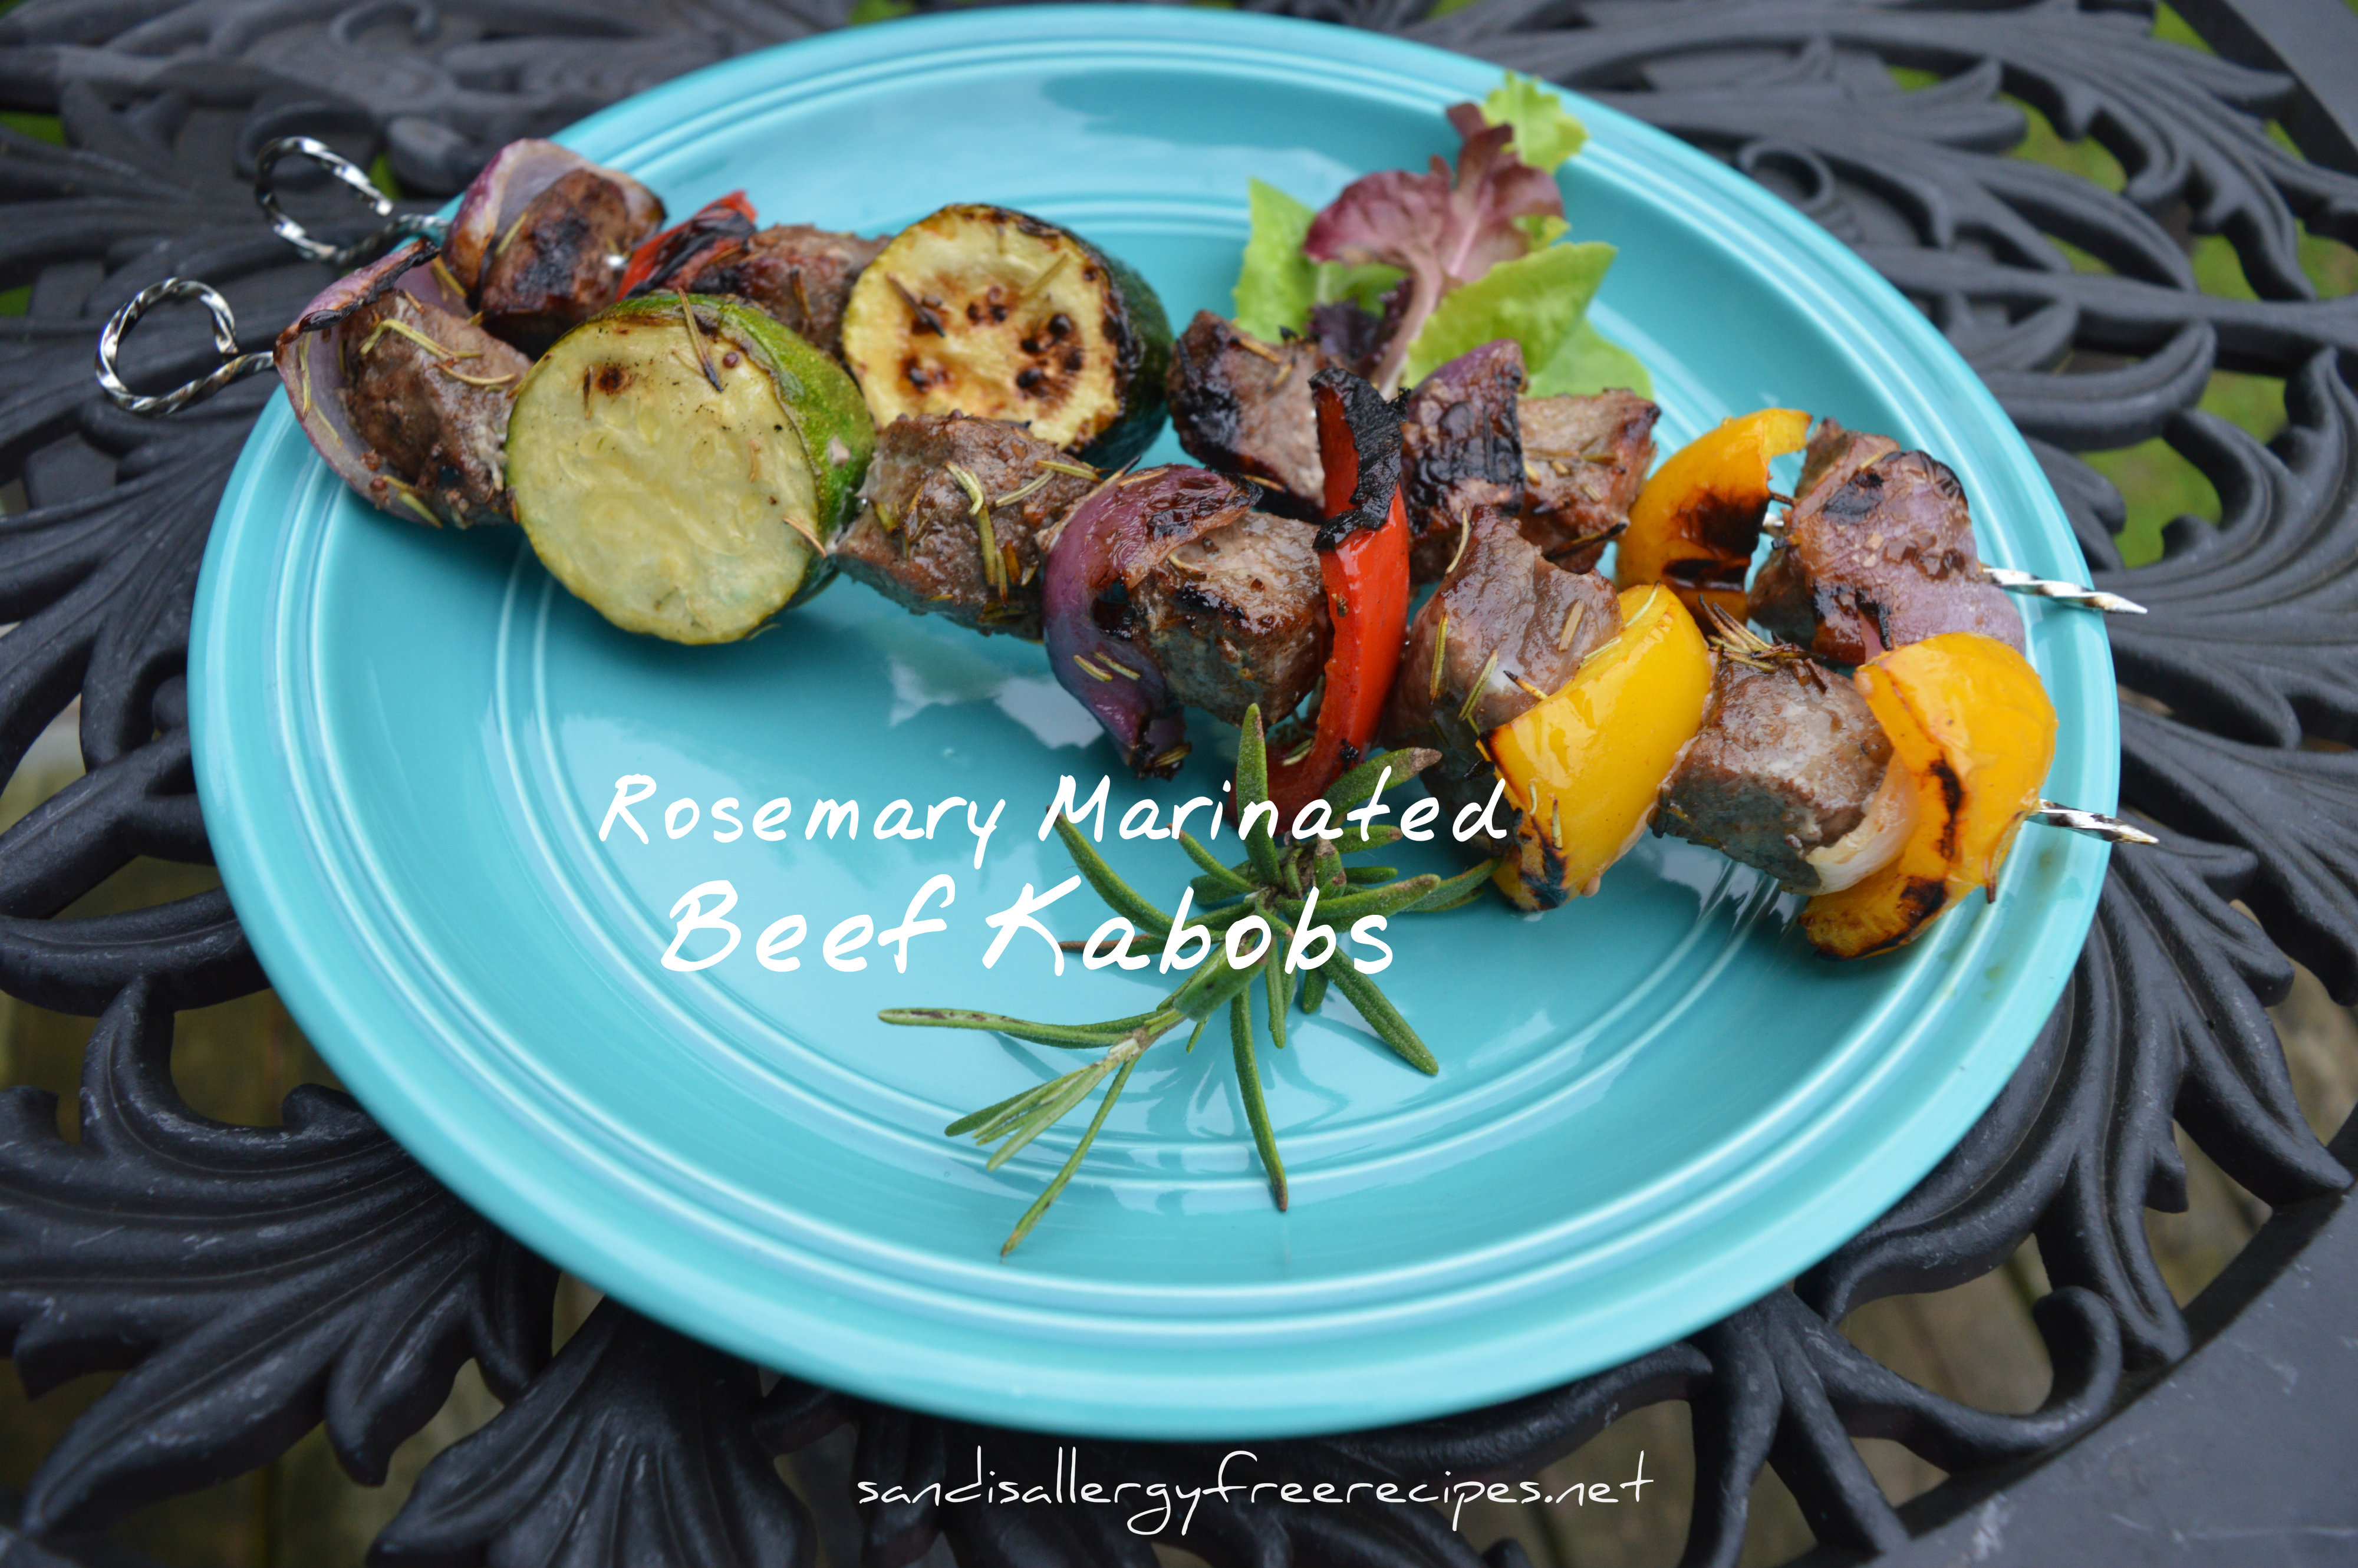 Check out my Rosemary Marinated Beef Kabobs at Paleo Demystified.